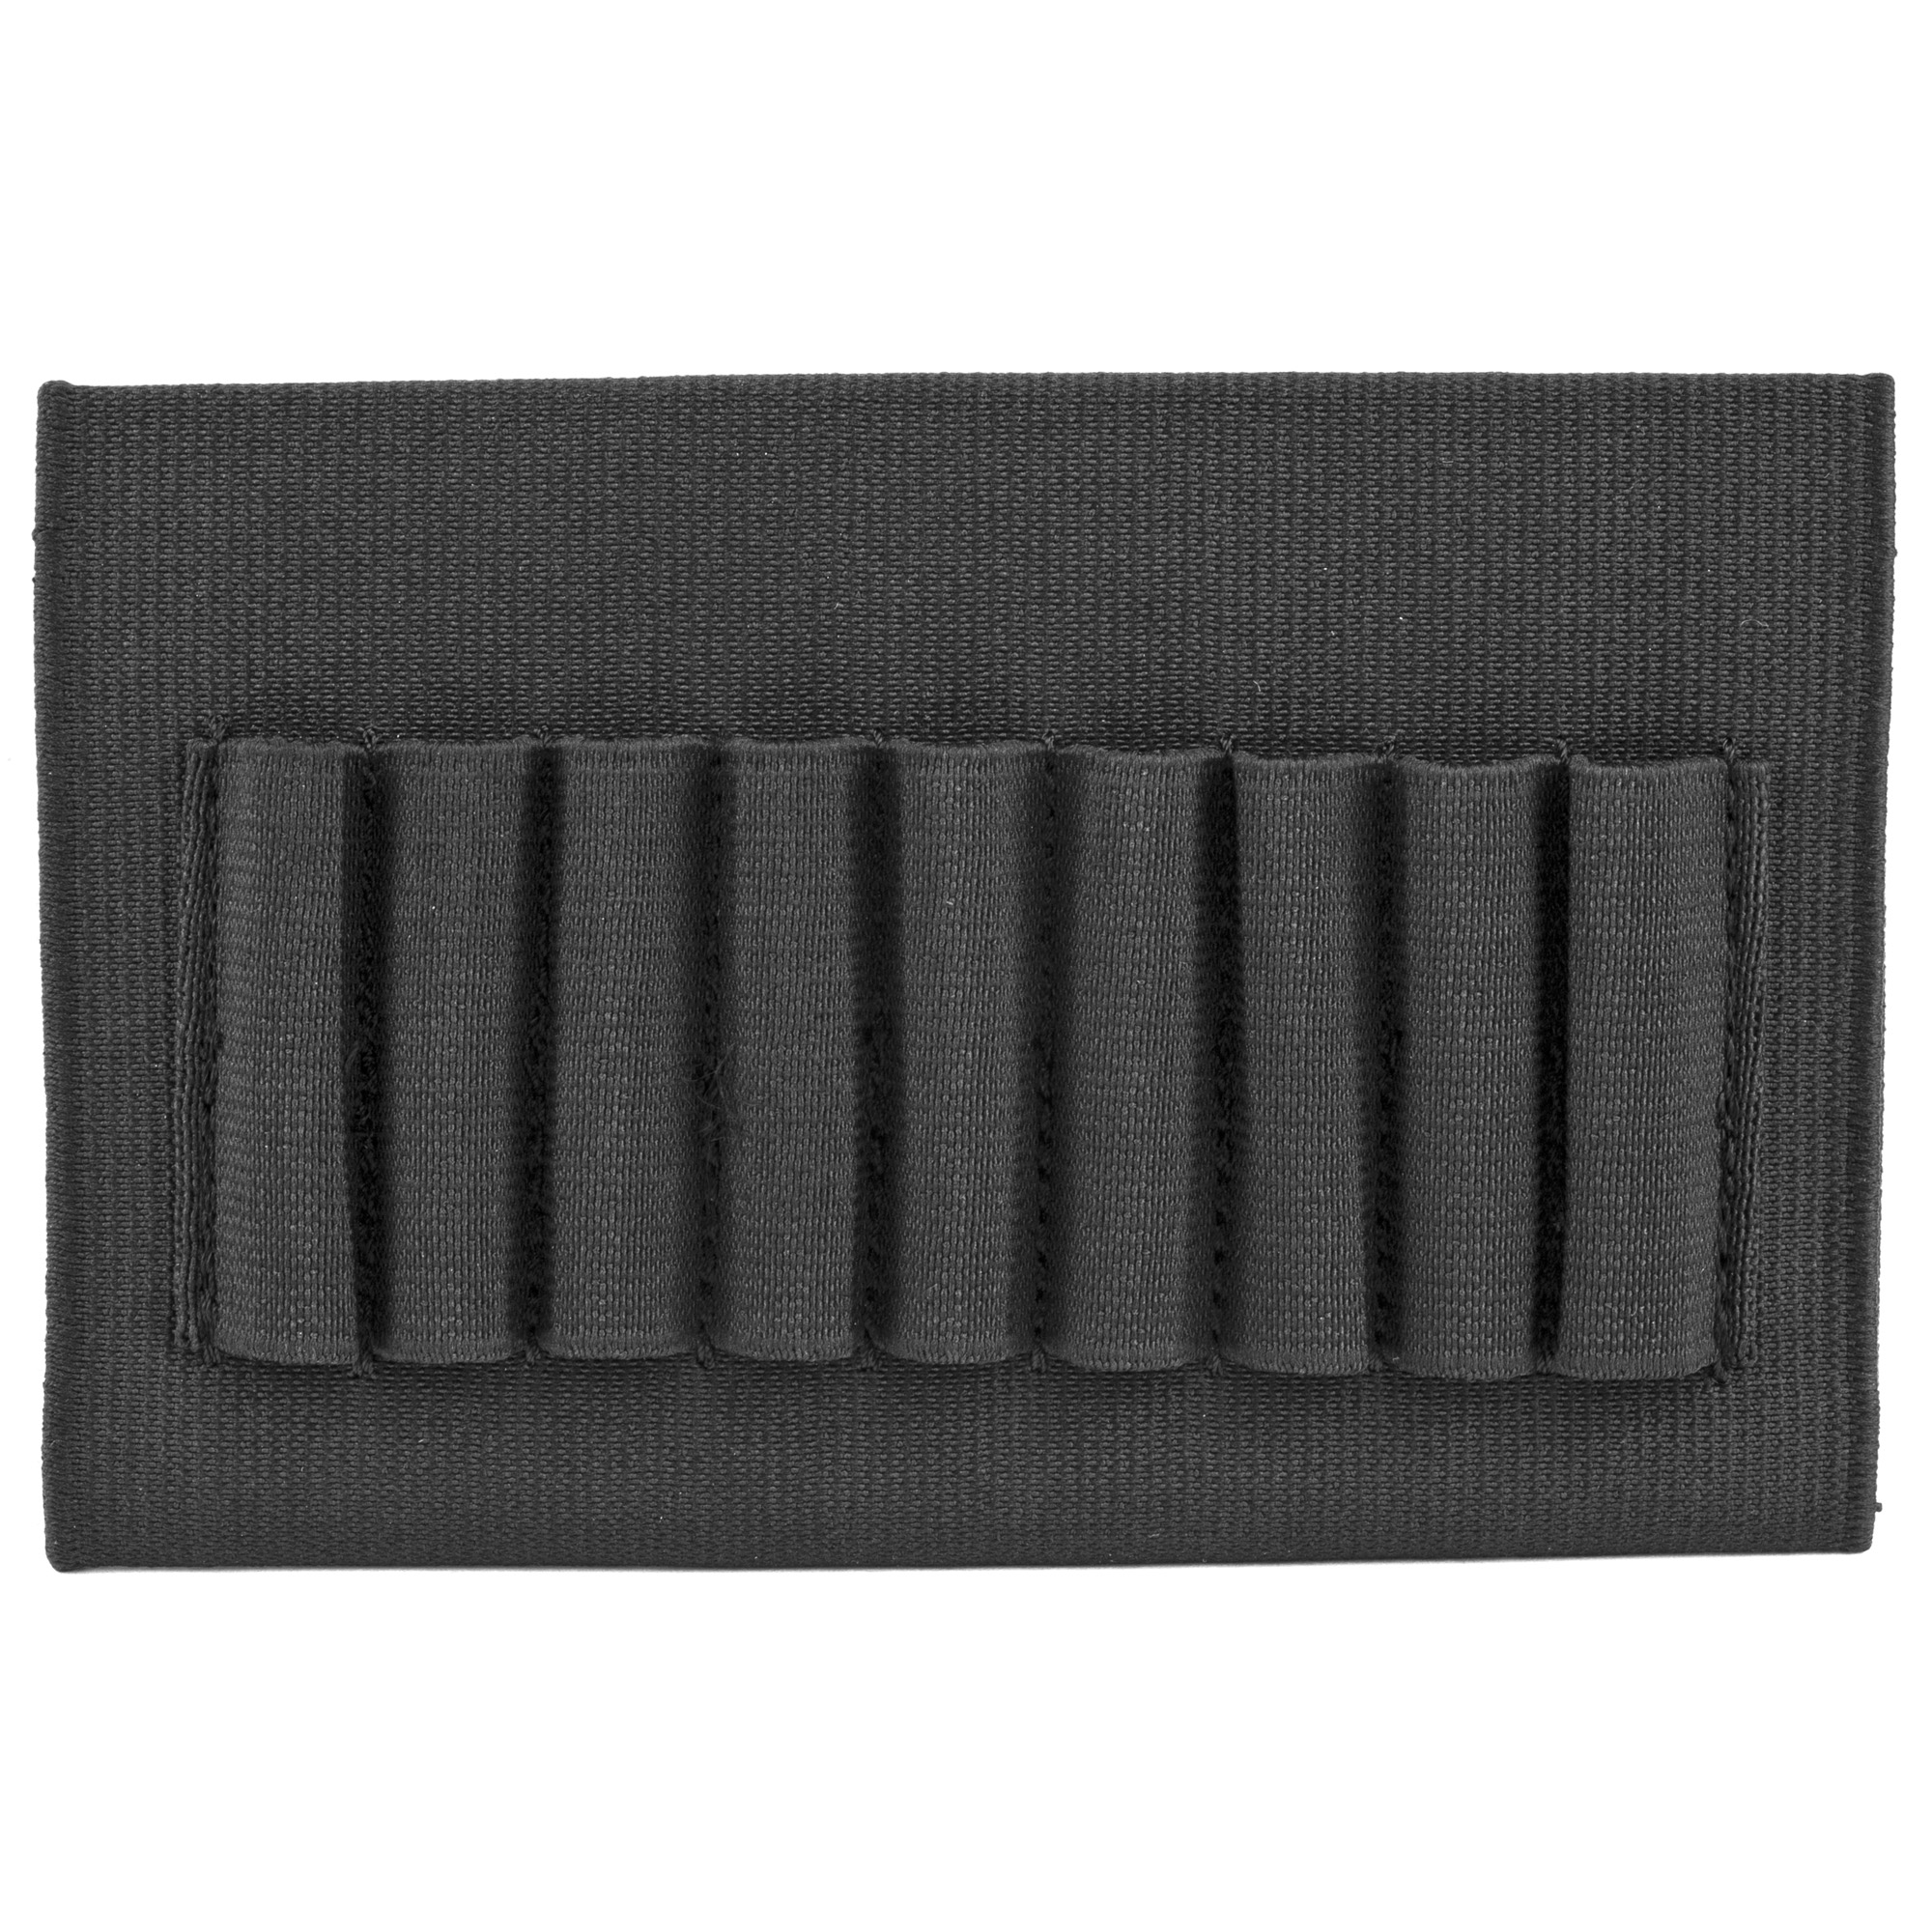 This open style rifle buttstock shell holder holds 9 cartridges. Elastic sleeve quickly secures over rifle and the sewn-on elastic loops keep nine rifle cartridges in place and organized.